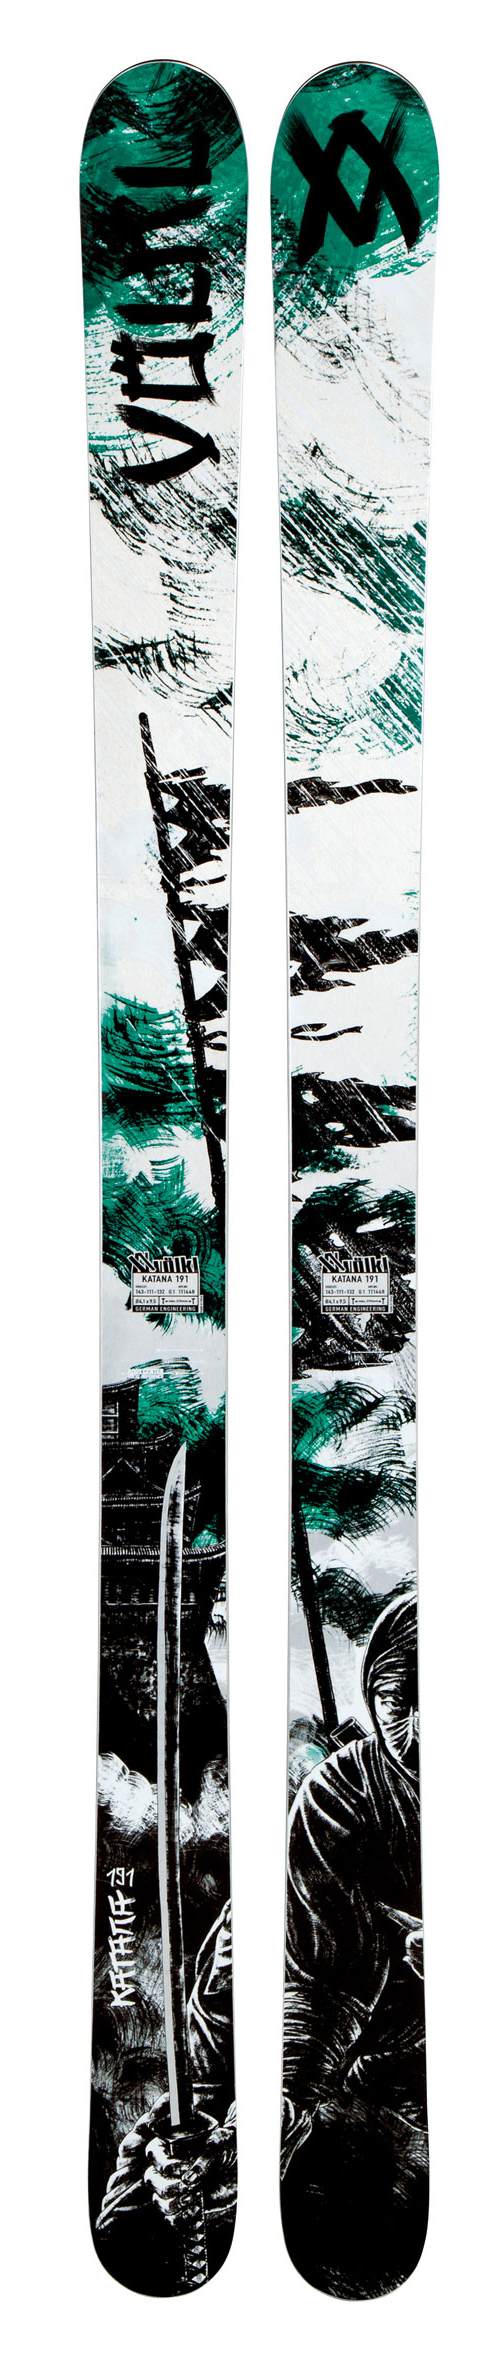 Ski There is nowhere for the powder to hide, when you are riding the Volkl Katana Skis. Featuring a reverse camber and shallow gradual rocker in the tip and tail, these are solid deep snow skis. A fast and aggressive ski, they are mostly meant for backcountry trips. They will rip through fresh pow and gnarly terrain with ease. Turns are incredibly stable and easy in any condition on the Katanas, although it is slightly slower than an all-mountain ski.Key Features of the Volkl Katana Skis:  Big Mountain  Full Rocker: A smooth, gradual bend from tip to tail with matching side and flex. Extended Low Profile (ELP  gives the skier all the benefits of added maneuverability in soft snow while also delivering smooth, graceful arcs on groomed terrain. How  By matching the flex and sidecut with the full rocker (long, gradual bend from tip to tail  profile, the skier gains full, uninterrupted edge contact. The more you put the ski on edge, the more effective the edge becomes. The resulting smoothness and predictability is truly uncanny.  Sensorwood  Power Construction  Powered by Titanium  Radius: 24.2 (177 , 25.8 (184 , 28.2 (191 , 30.7 (198 - $638.95